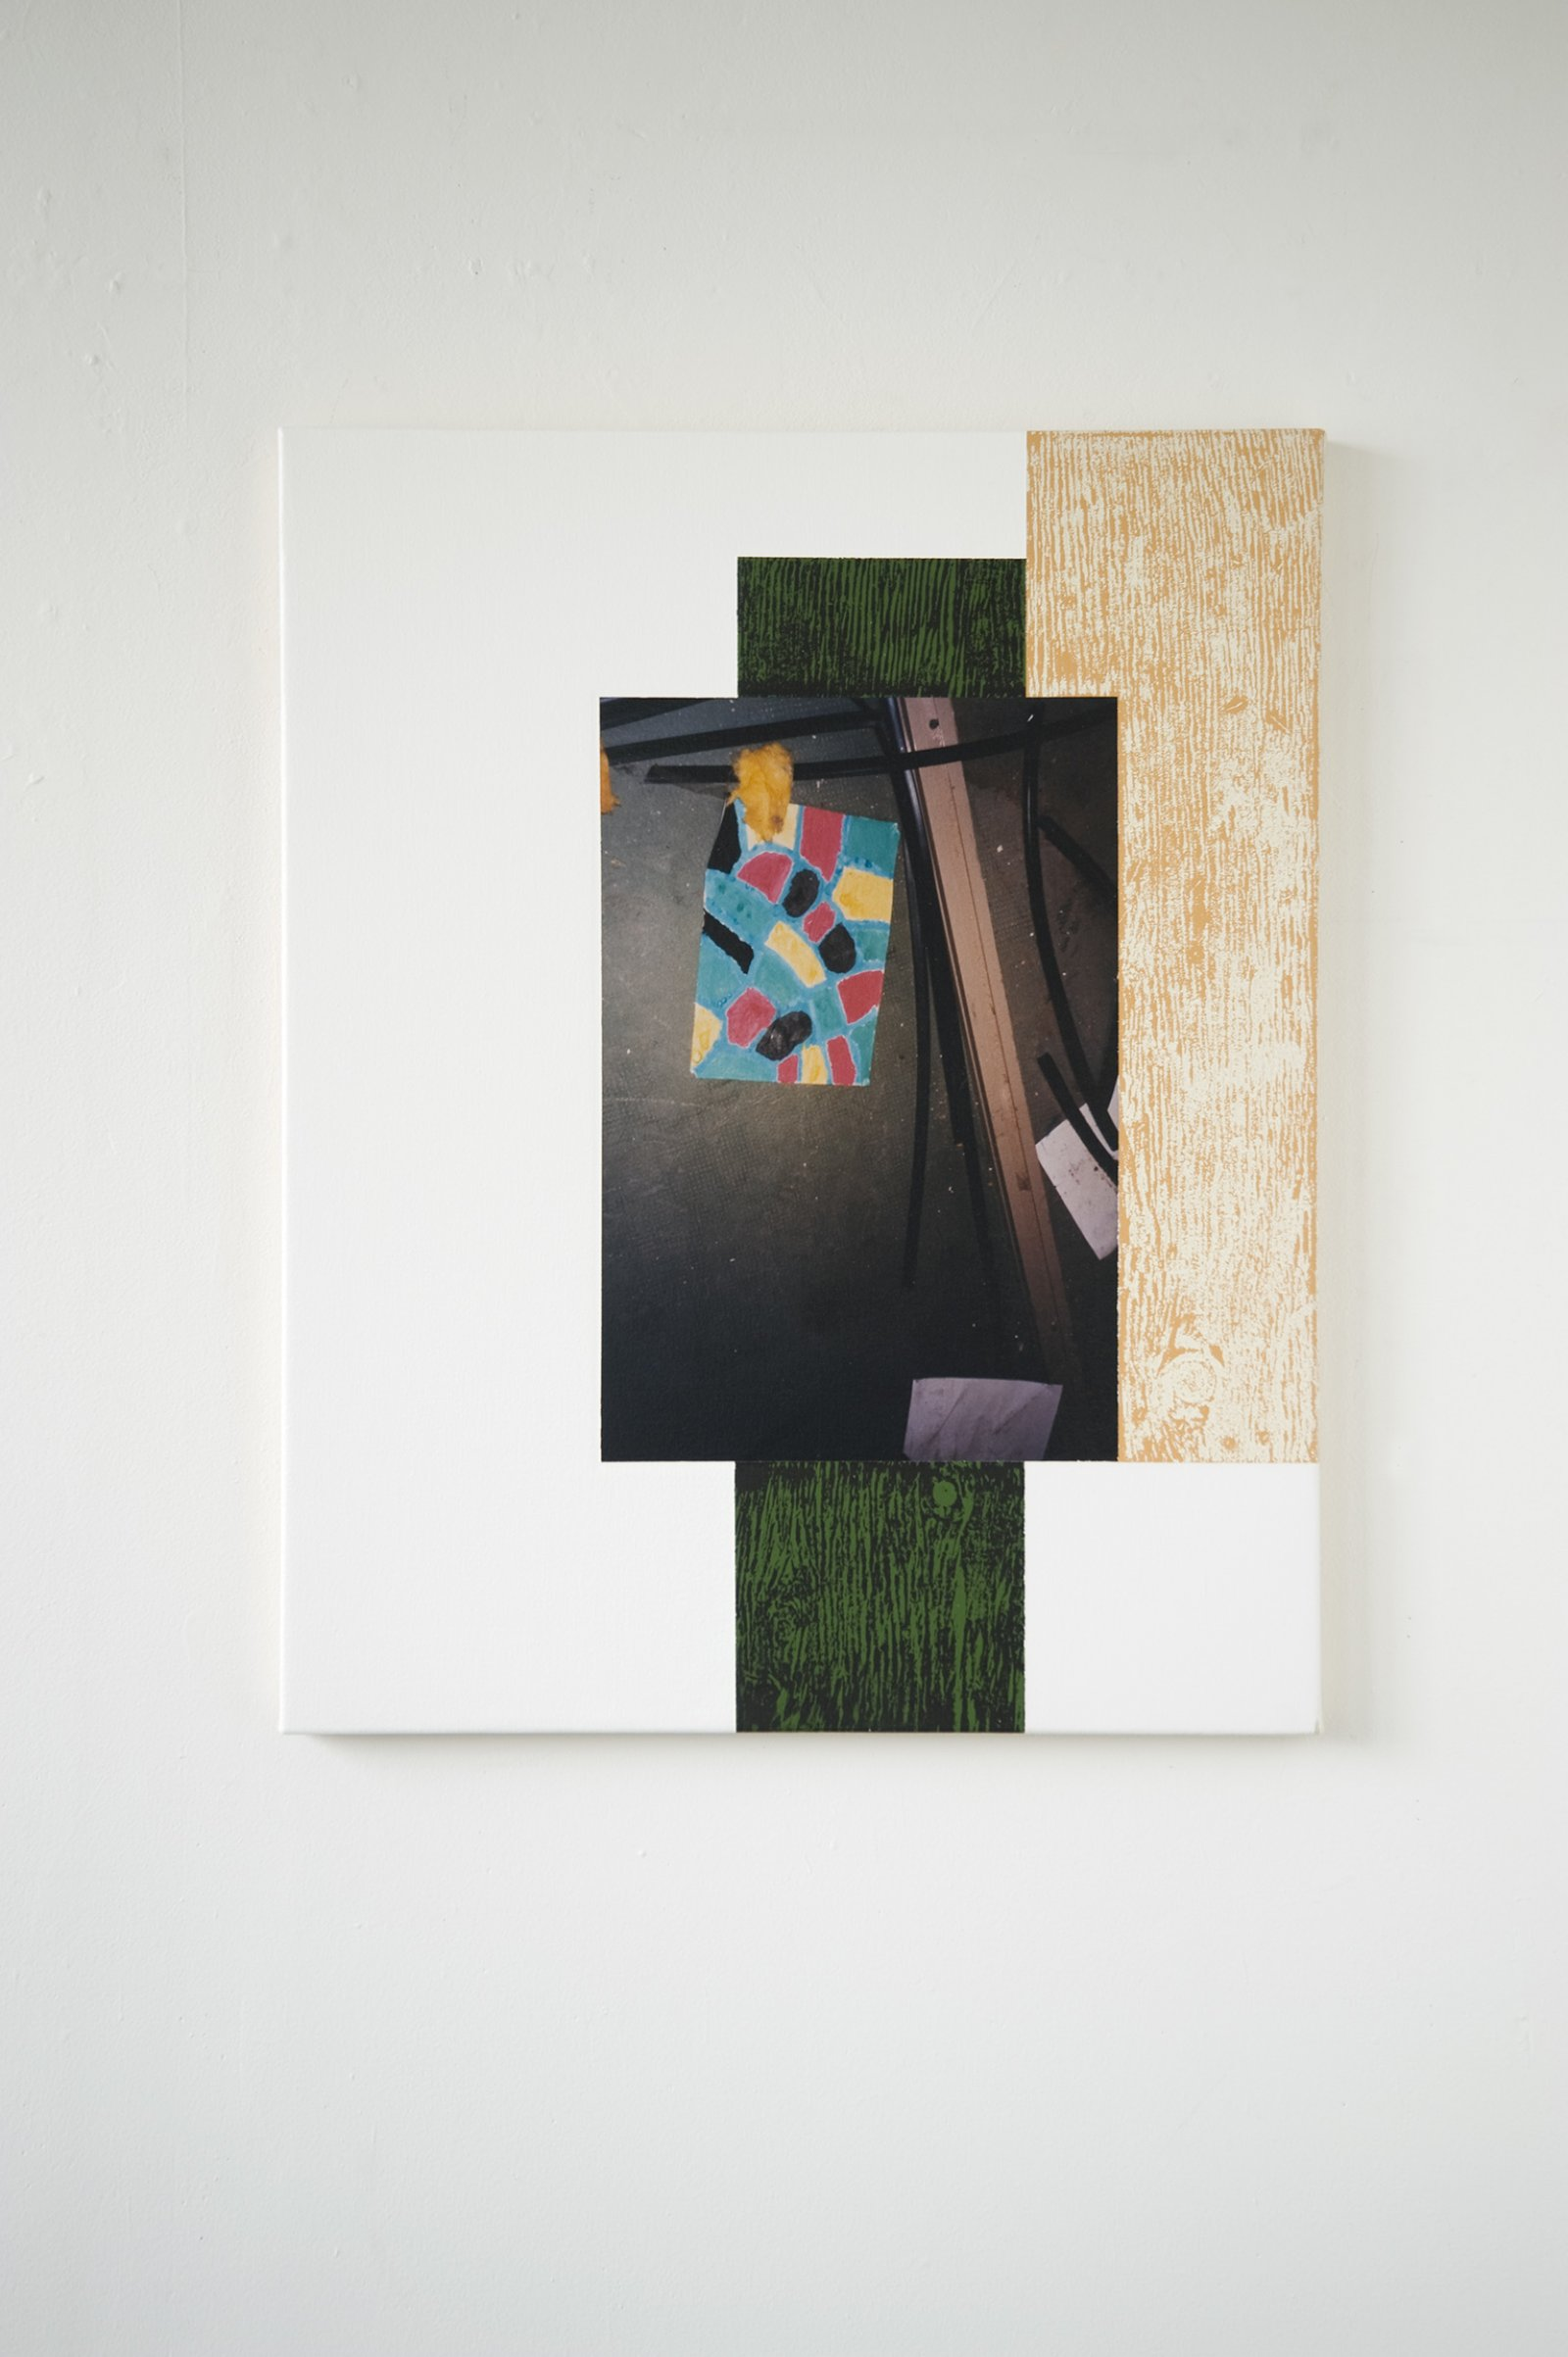 Ian Wallace,Abstract Art III, 1999, photolaminate with acrylic on canvas, 30 x 24 in. (76 x 61 cm)